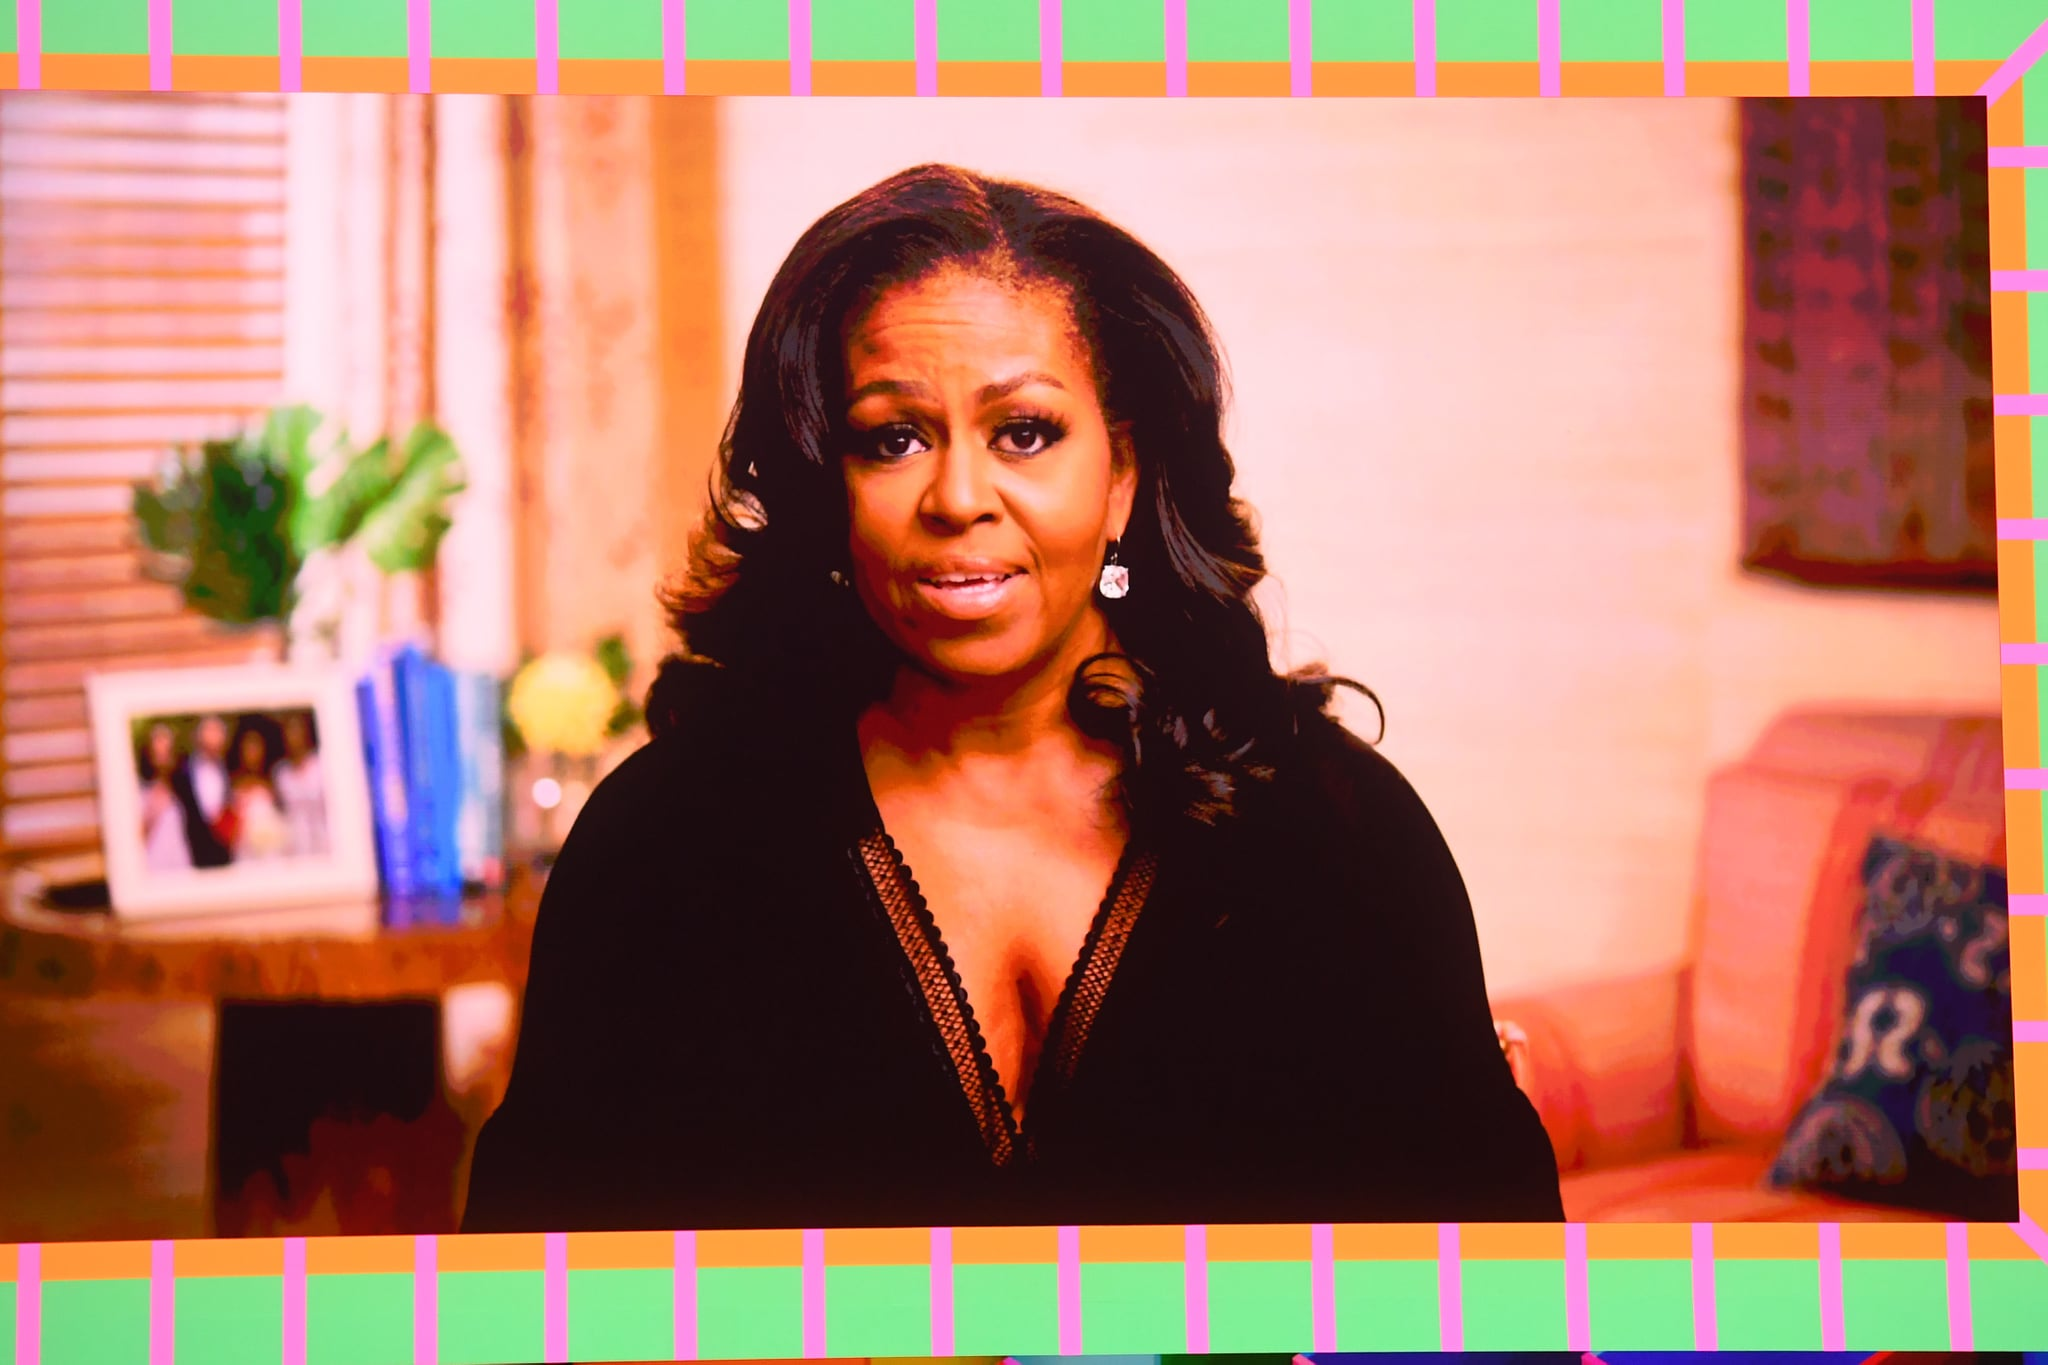 LONDON, ENGLAND - MAY 11: Michelle Obama delivers a video message during The BRIT Awards 2021 at The O2 Arena on May 11, 2021 in London, England. (Photo by Dave J Hogan/Getty Images)